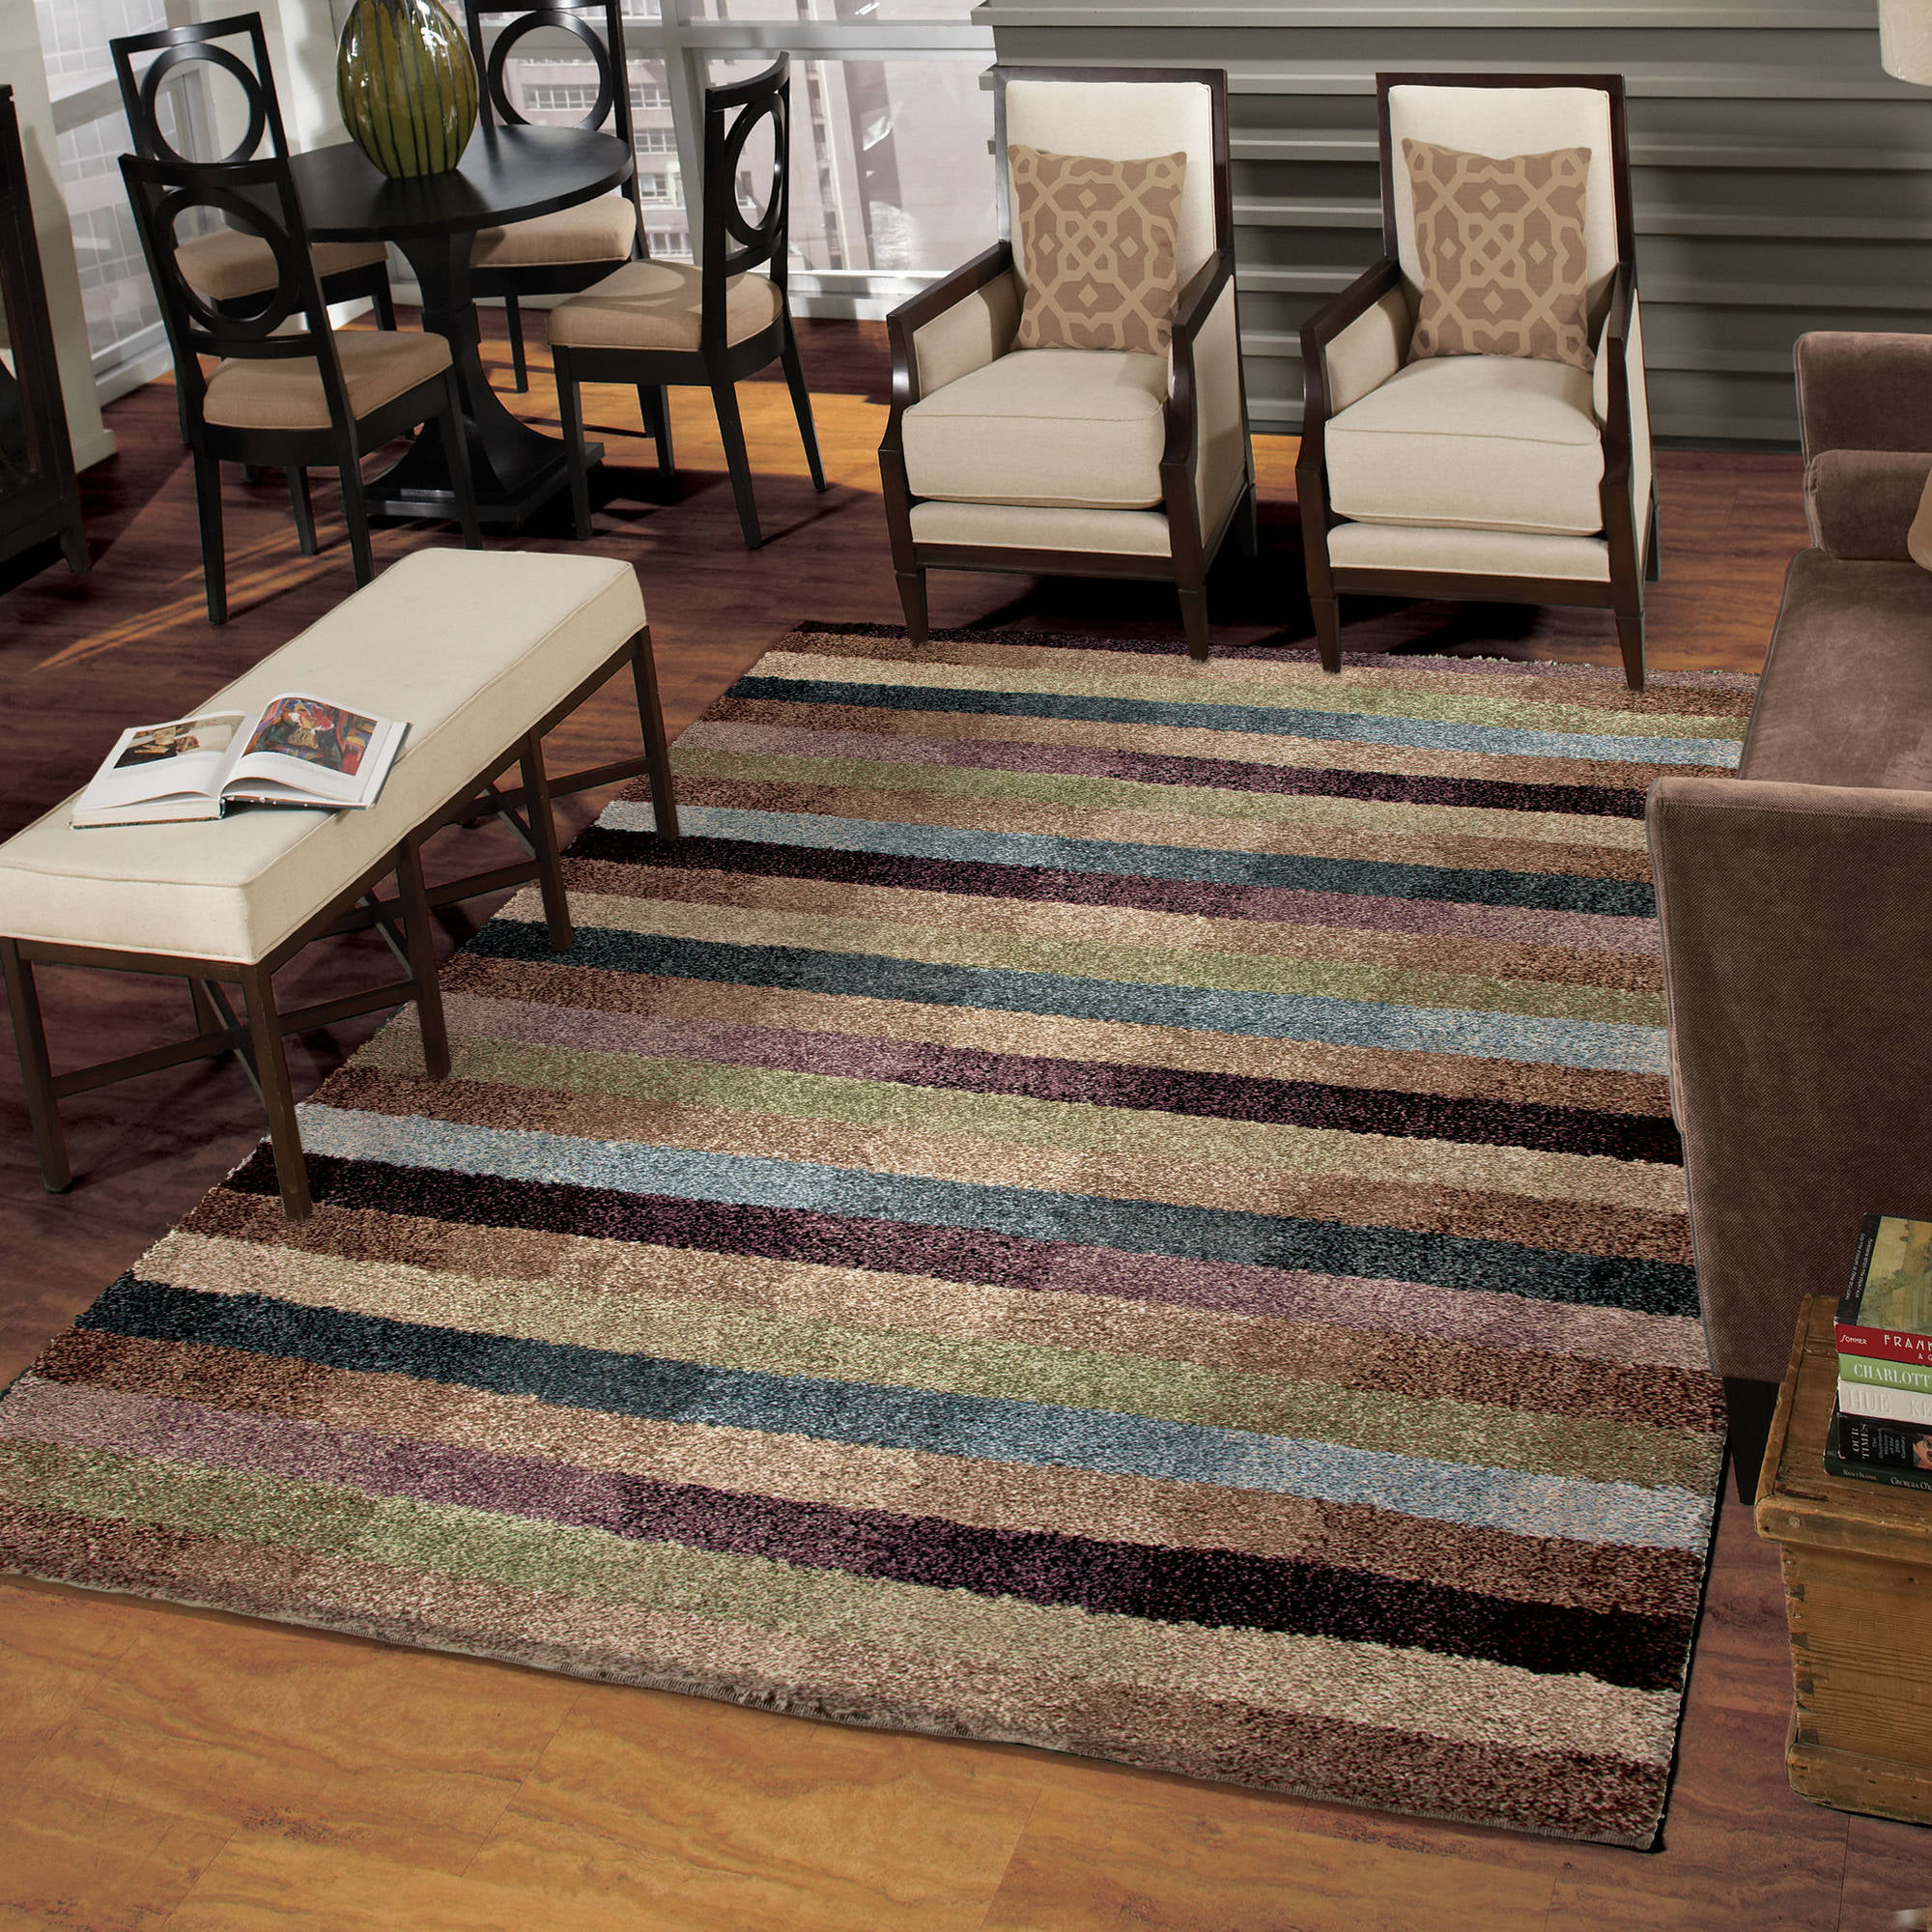 undefined profileid bjs wholesale rug product club recipeid multicolor mirage orian rugs x imageservice desert imageid